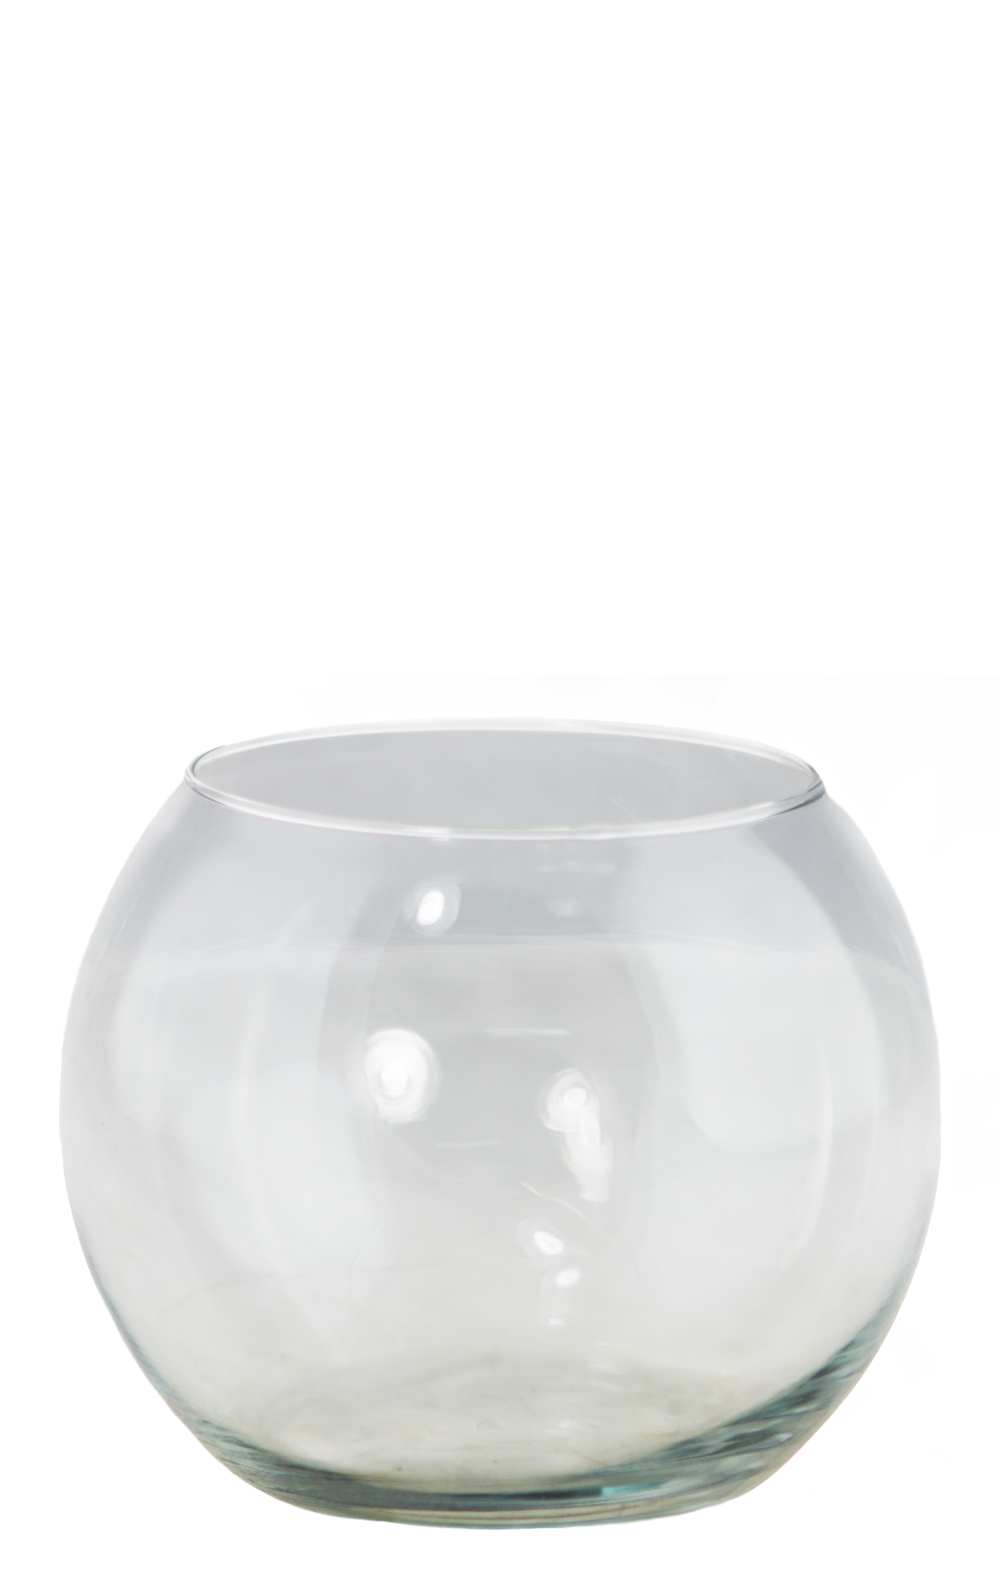 bubble-bowl-transparency.png